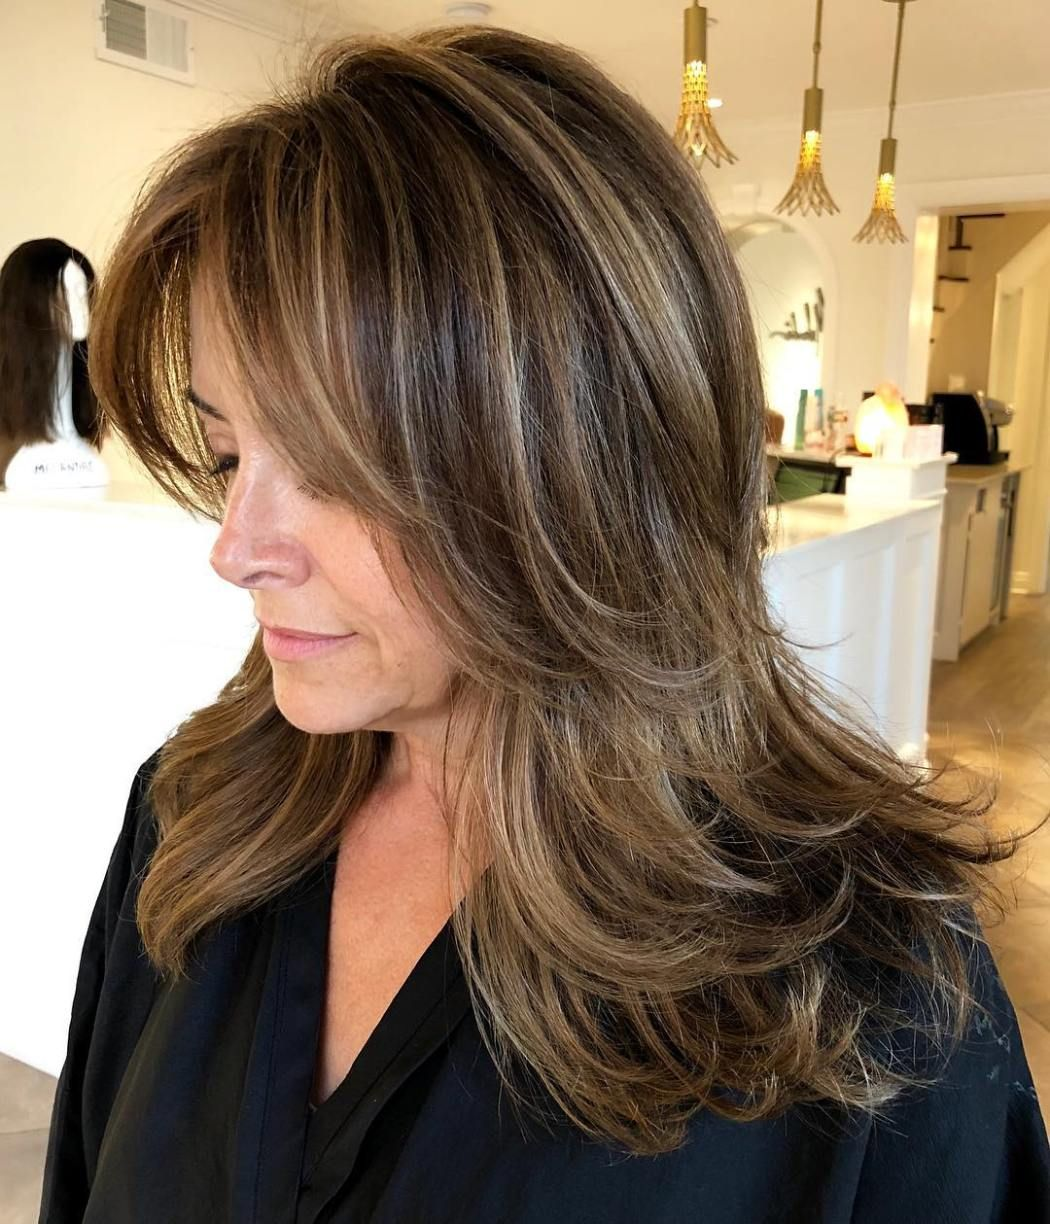 60 most prominent hairstyles for women over 40 in 2019